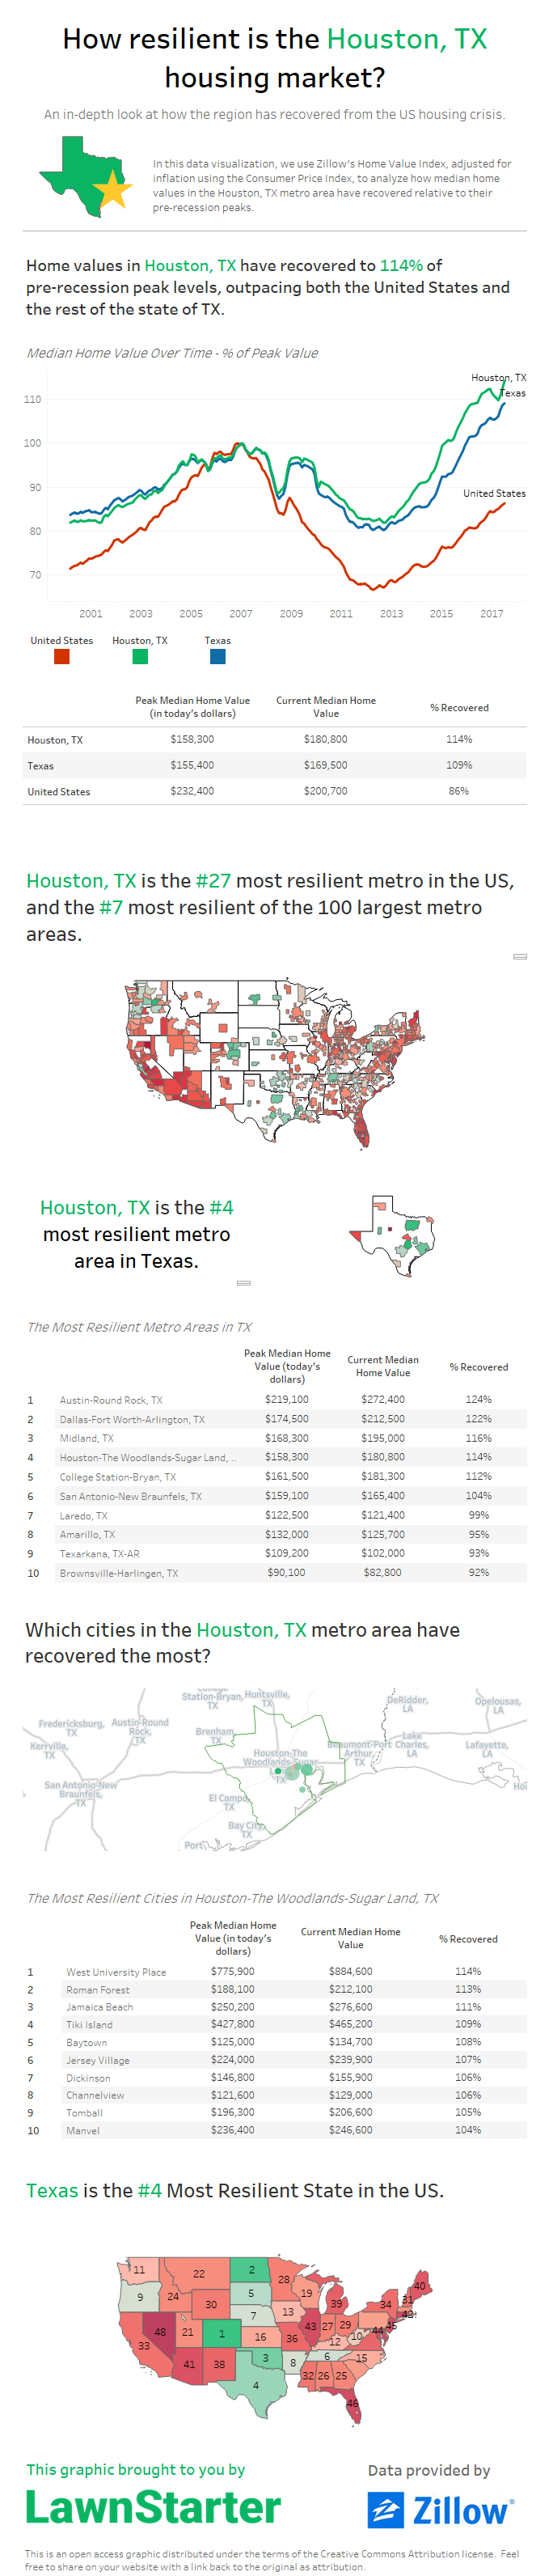 How resilient is the Houston, TX housing market? by Lawnstarter.com